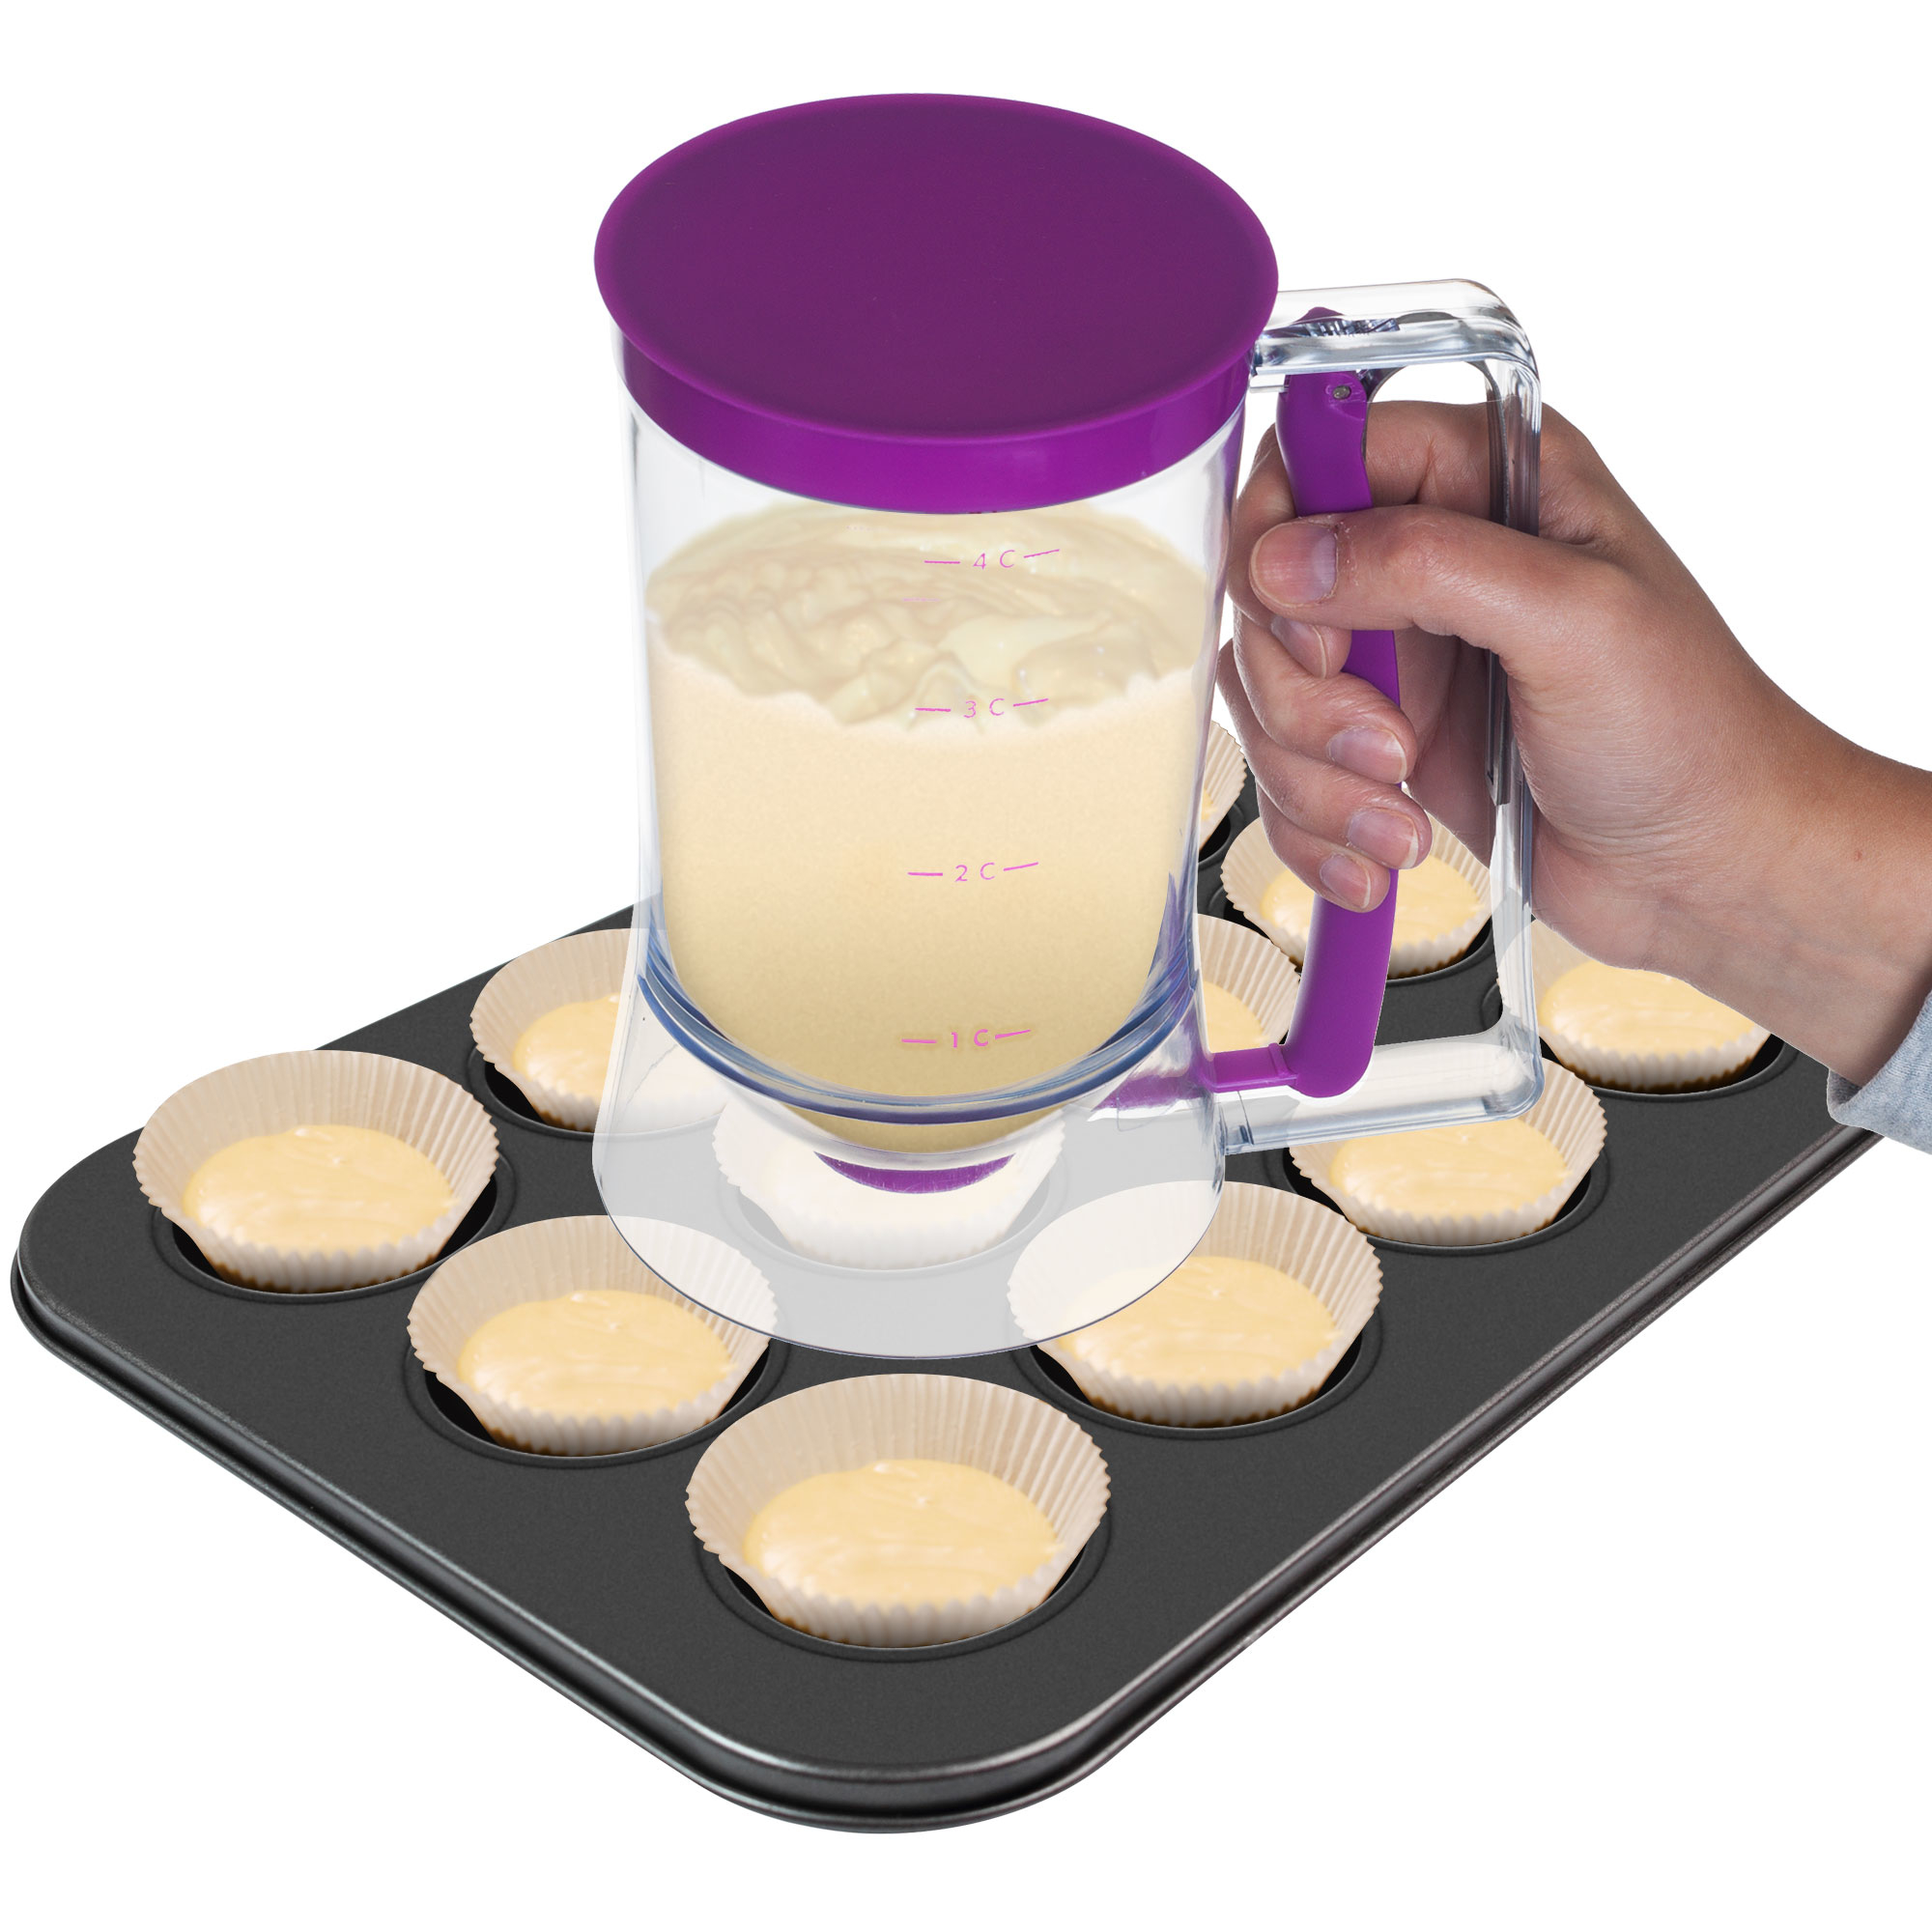 Chef Buddy Pan Cup Cake Batter Dispenser - 4 Cup Capacity 588a2d1dc98fc446c744cc72